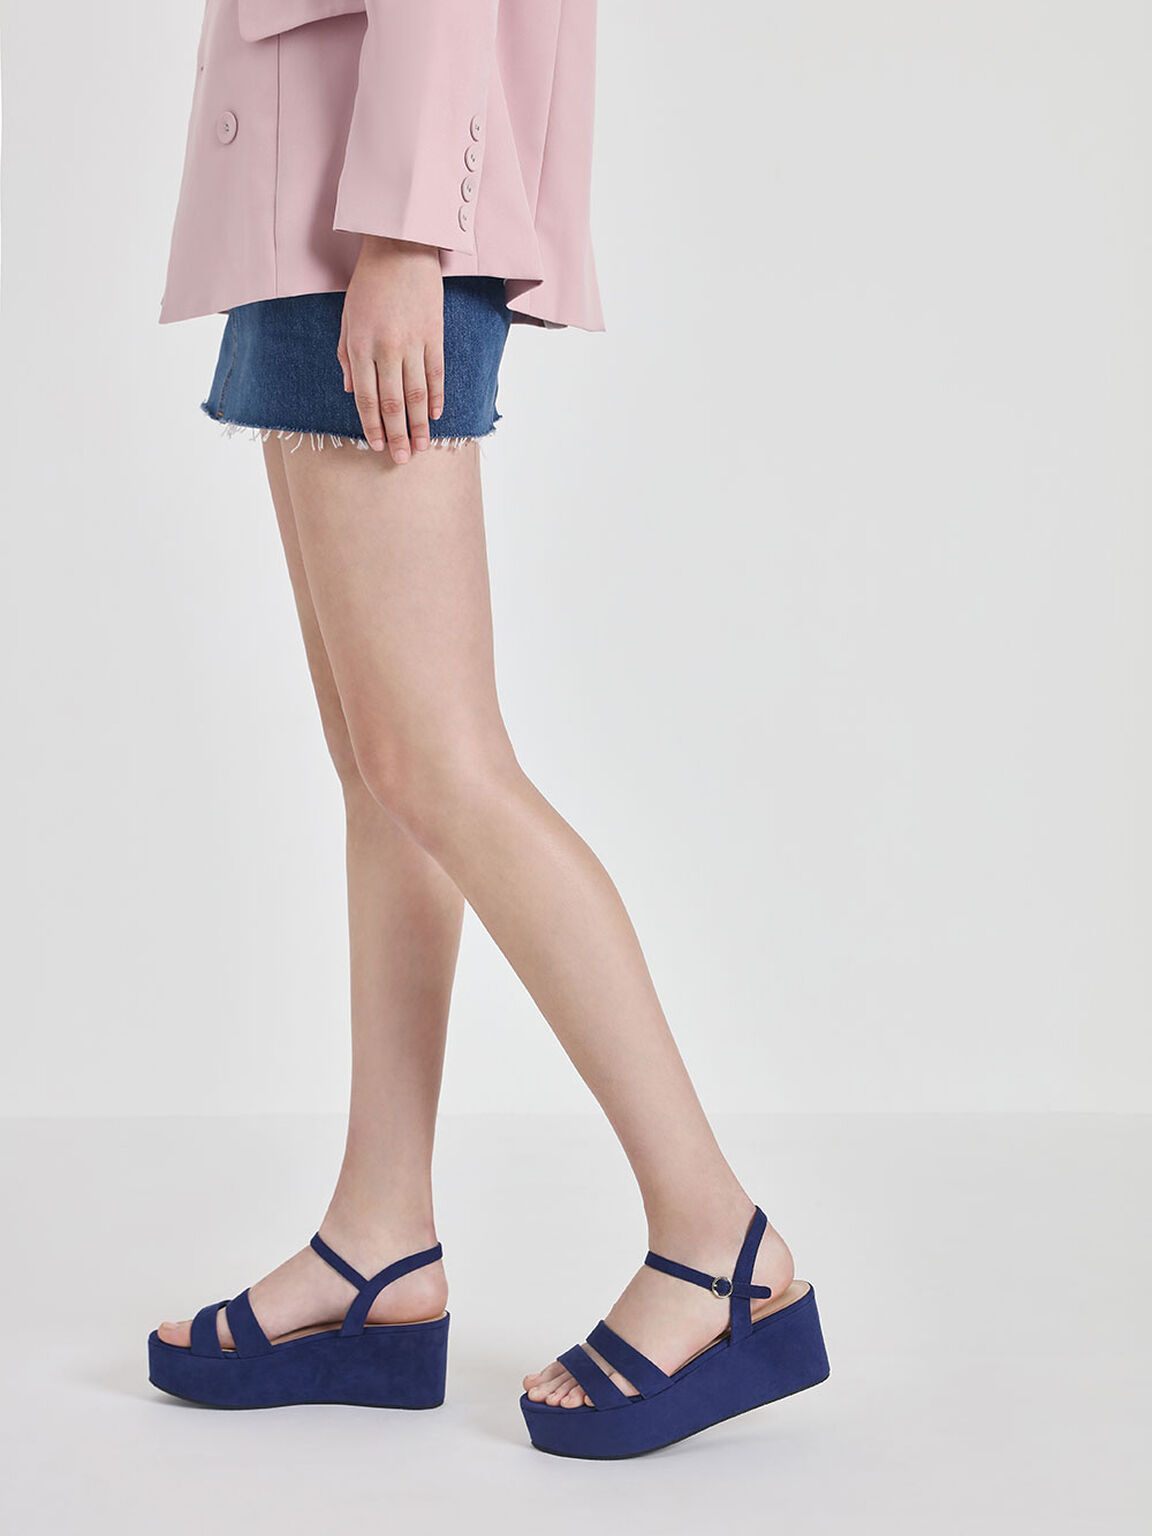 Double Strap Flatform Sandals, Dark Blue, hi-res